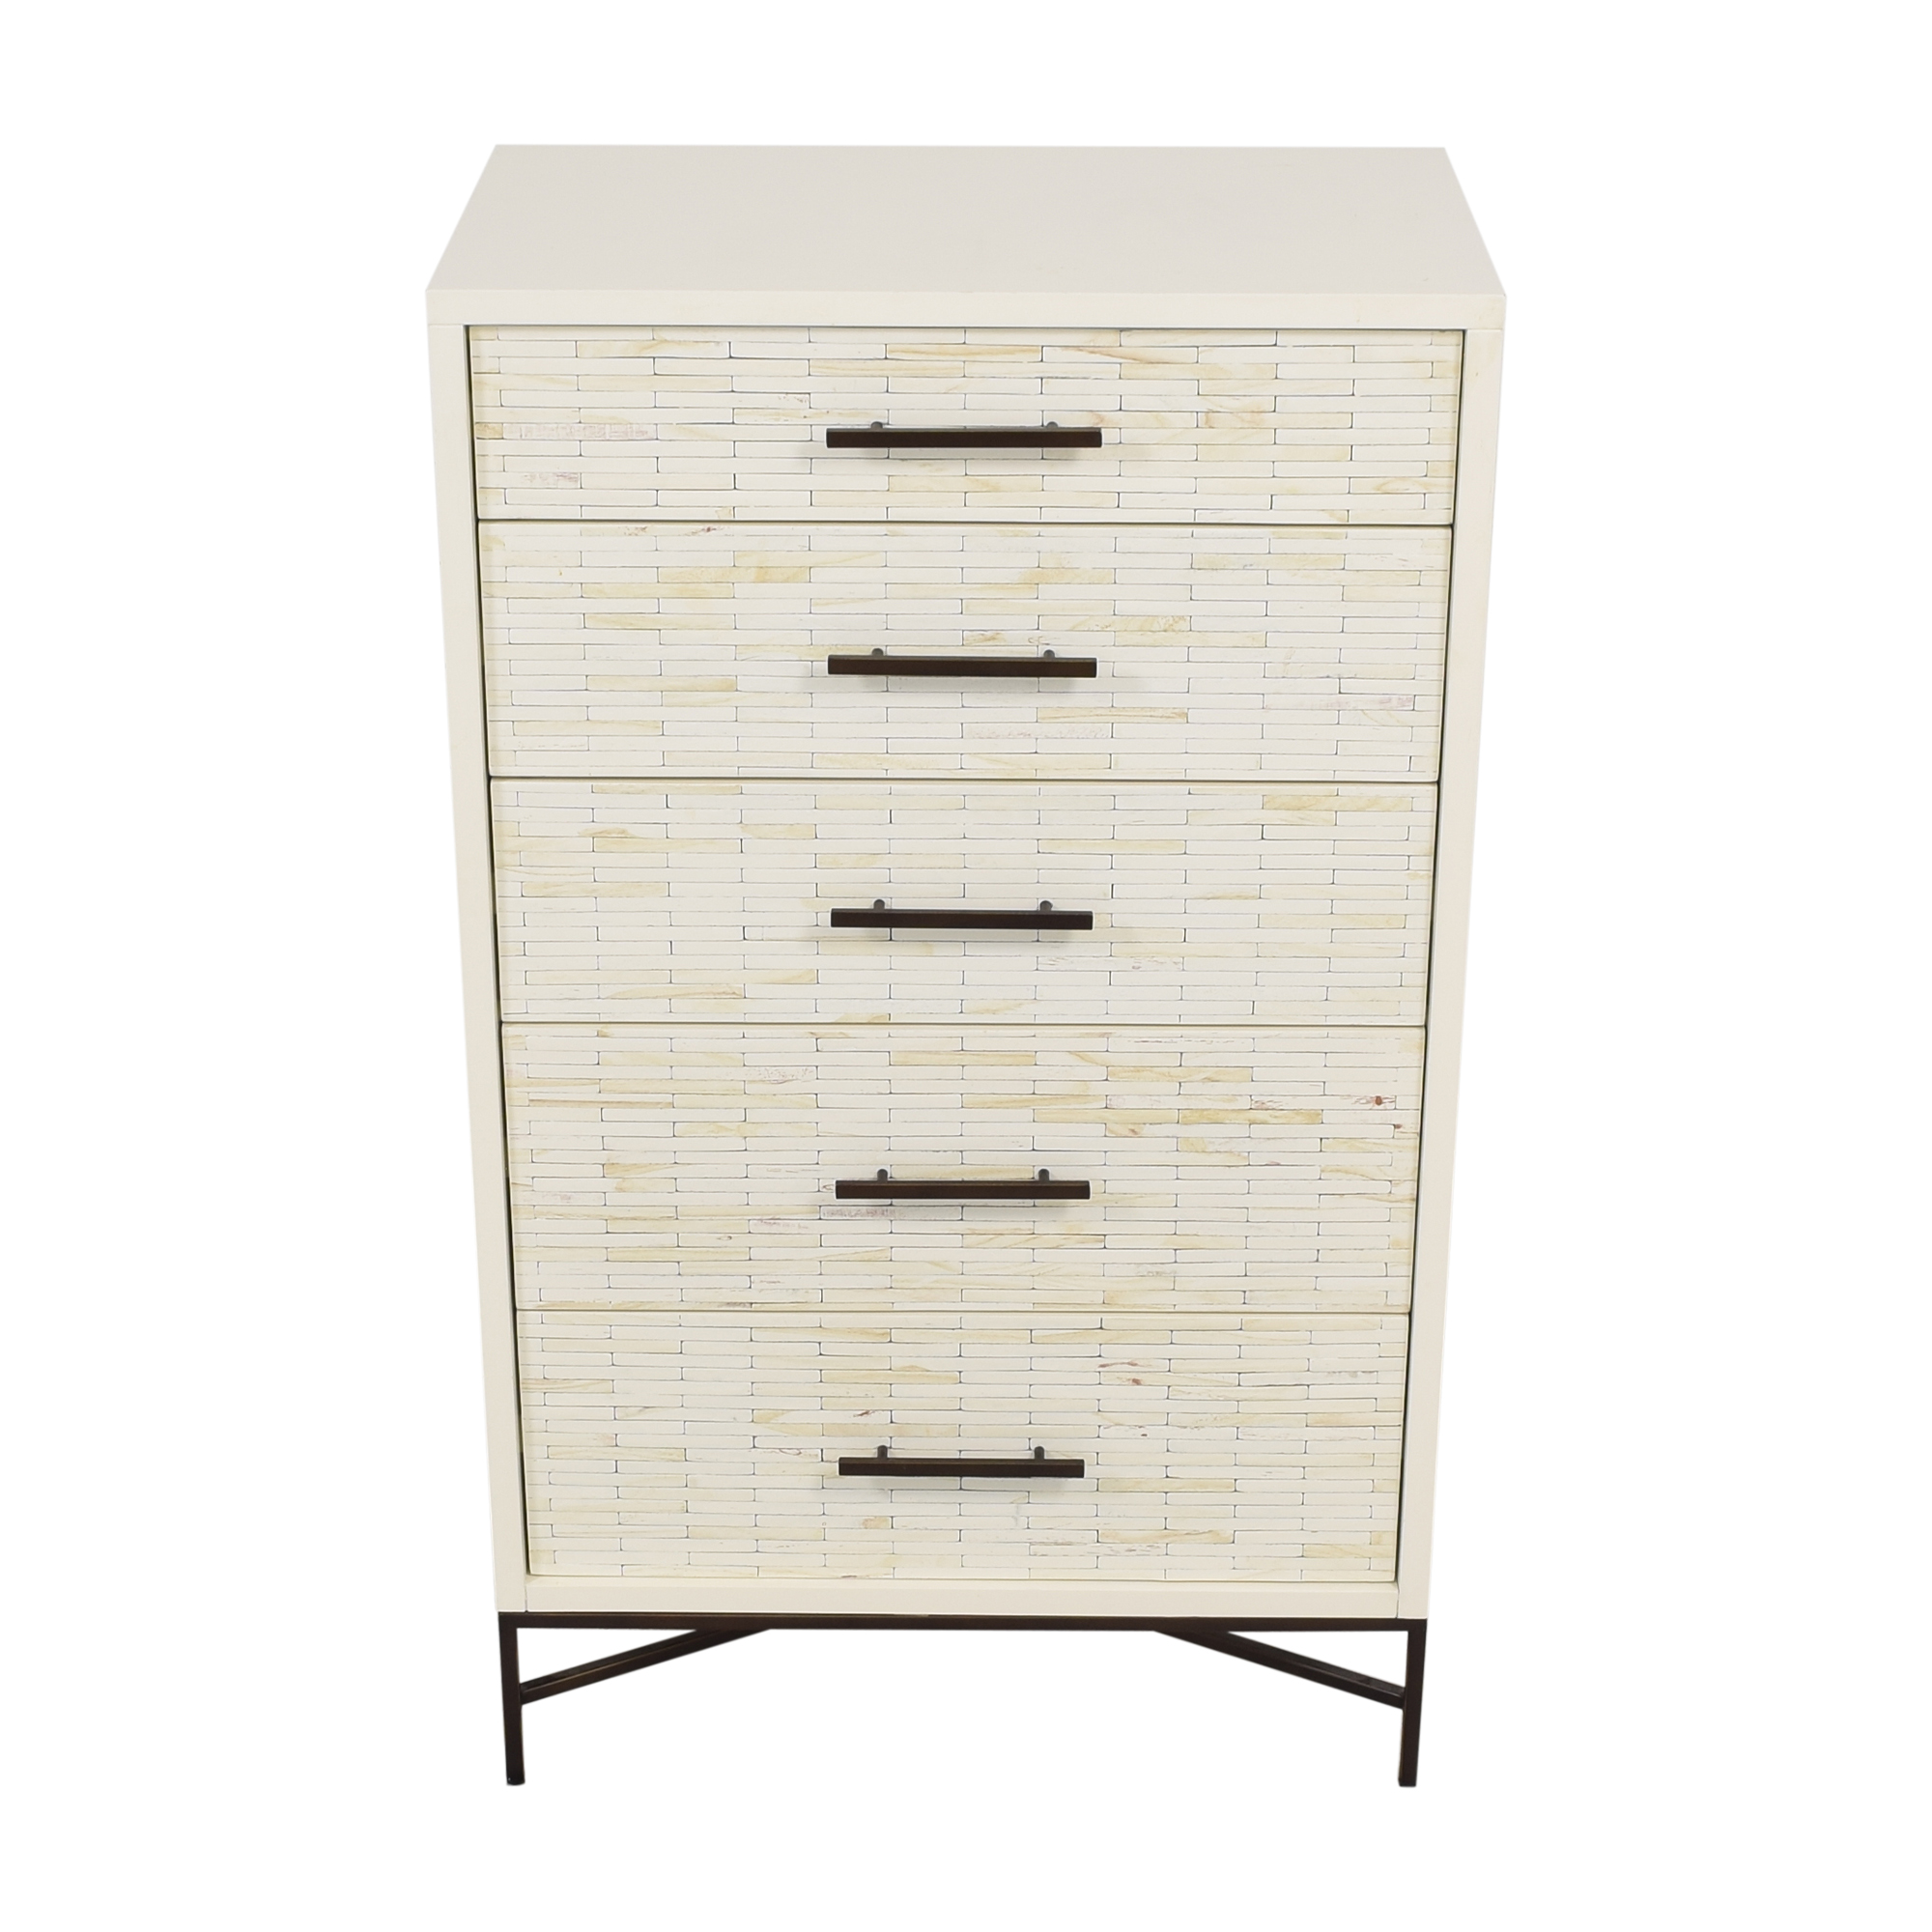 West Elm West Elm Wood Tiled 5-Drawer Dresser pa